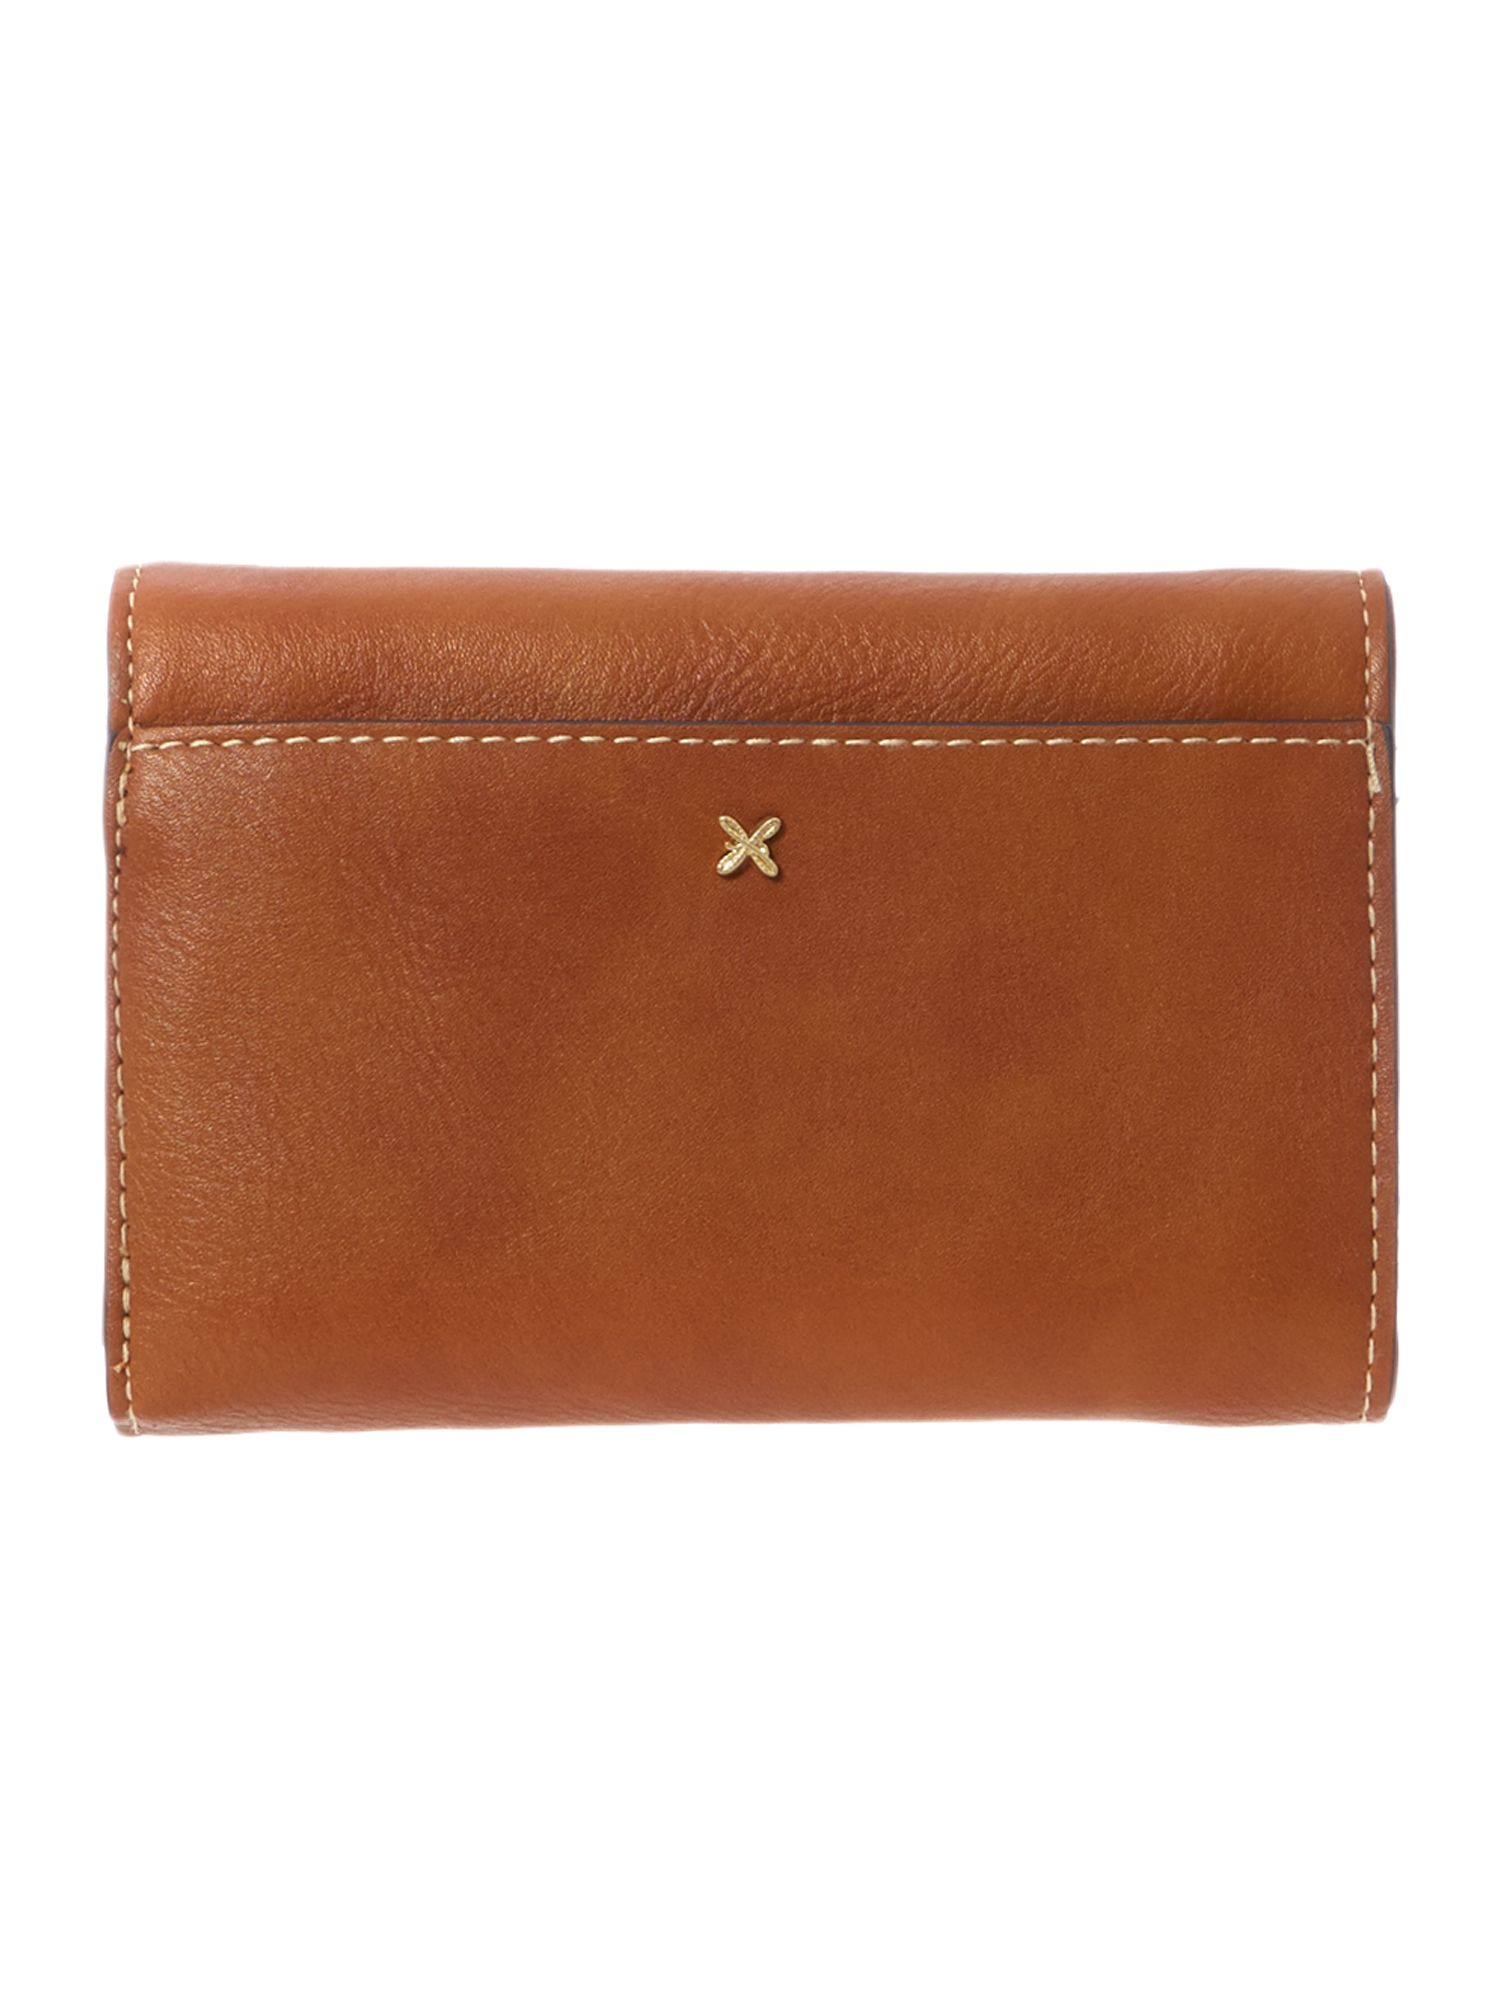 Christie tan flap over purse